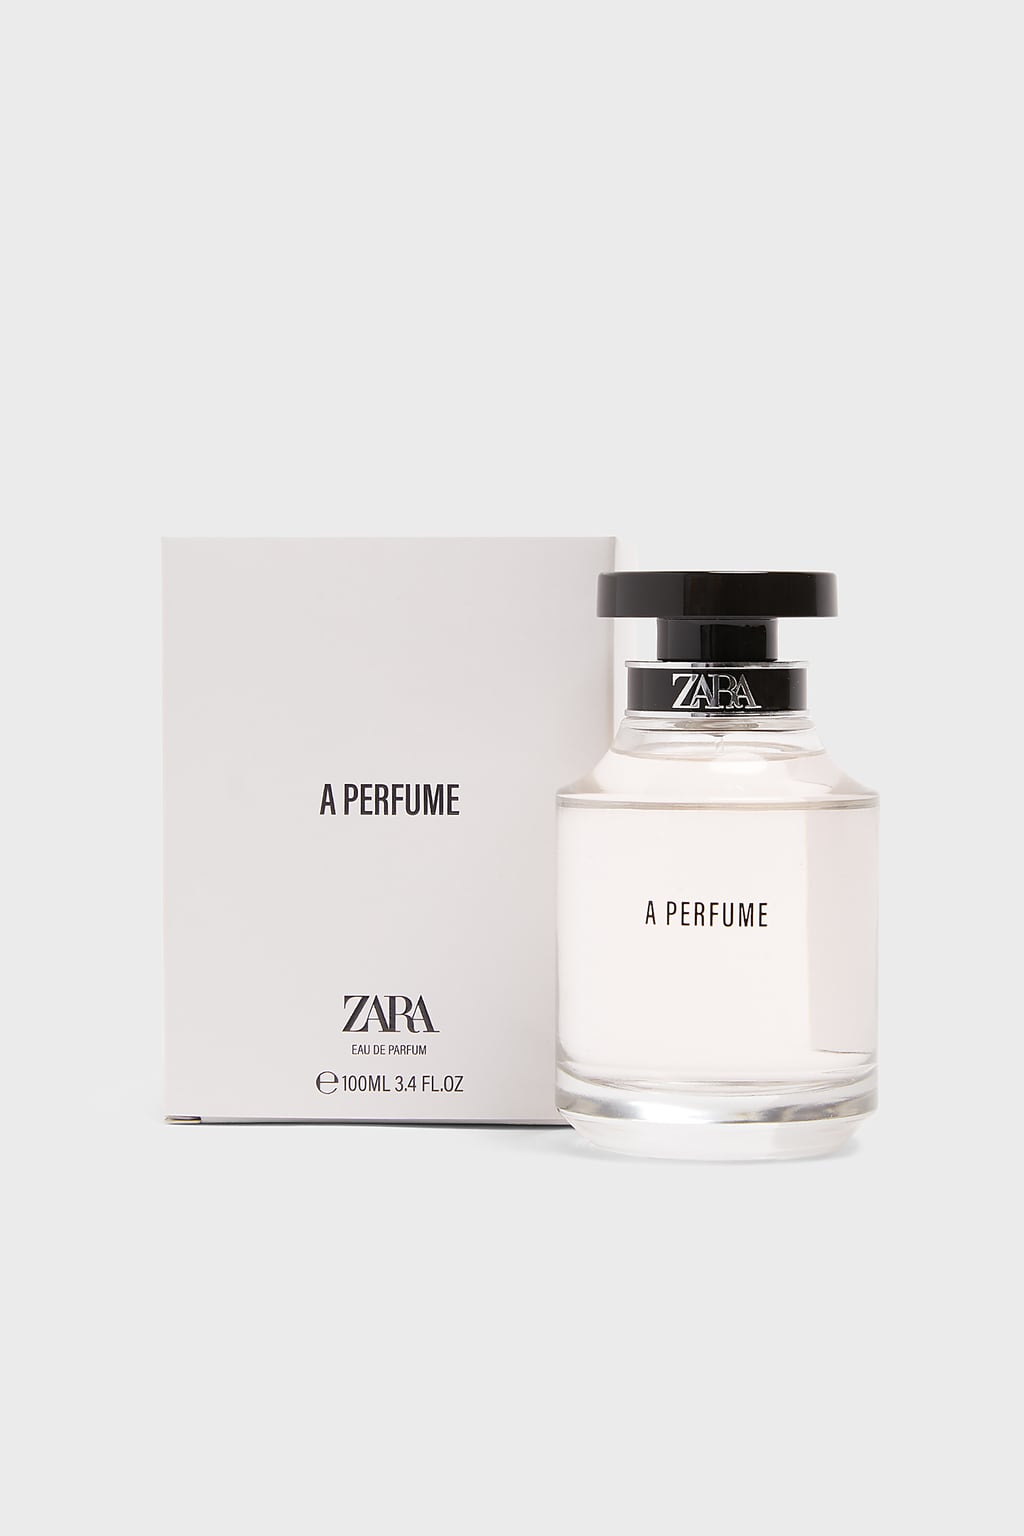 A A For Women Perfume Perfume A Zara For Perfume Zara Women bvYfgI7ym6